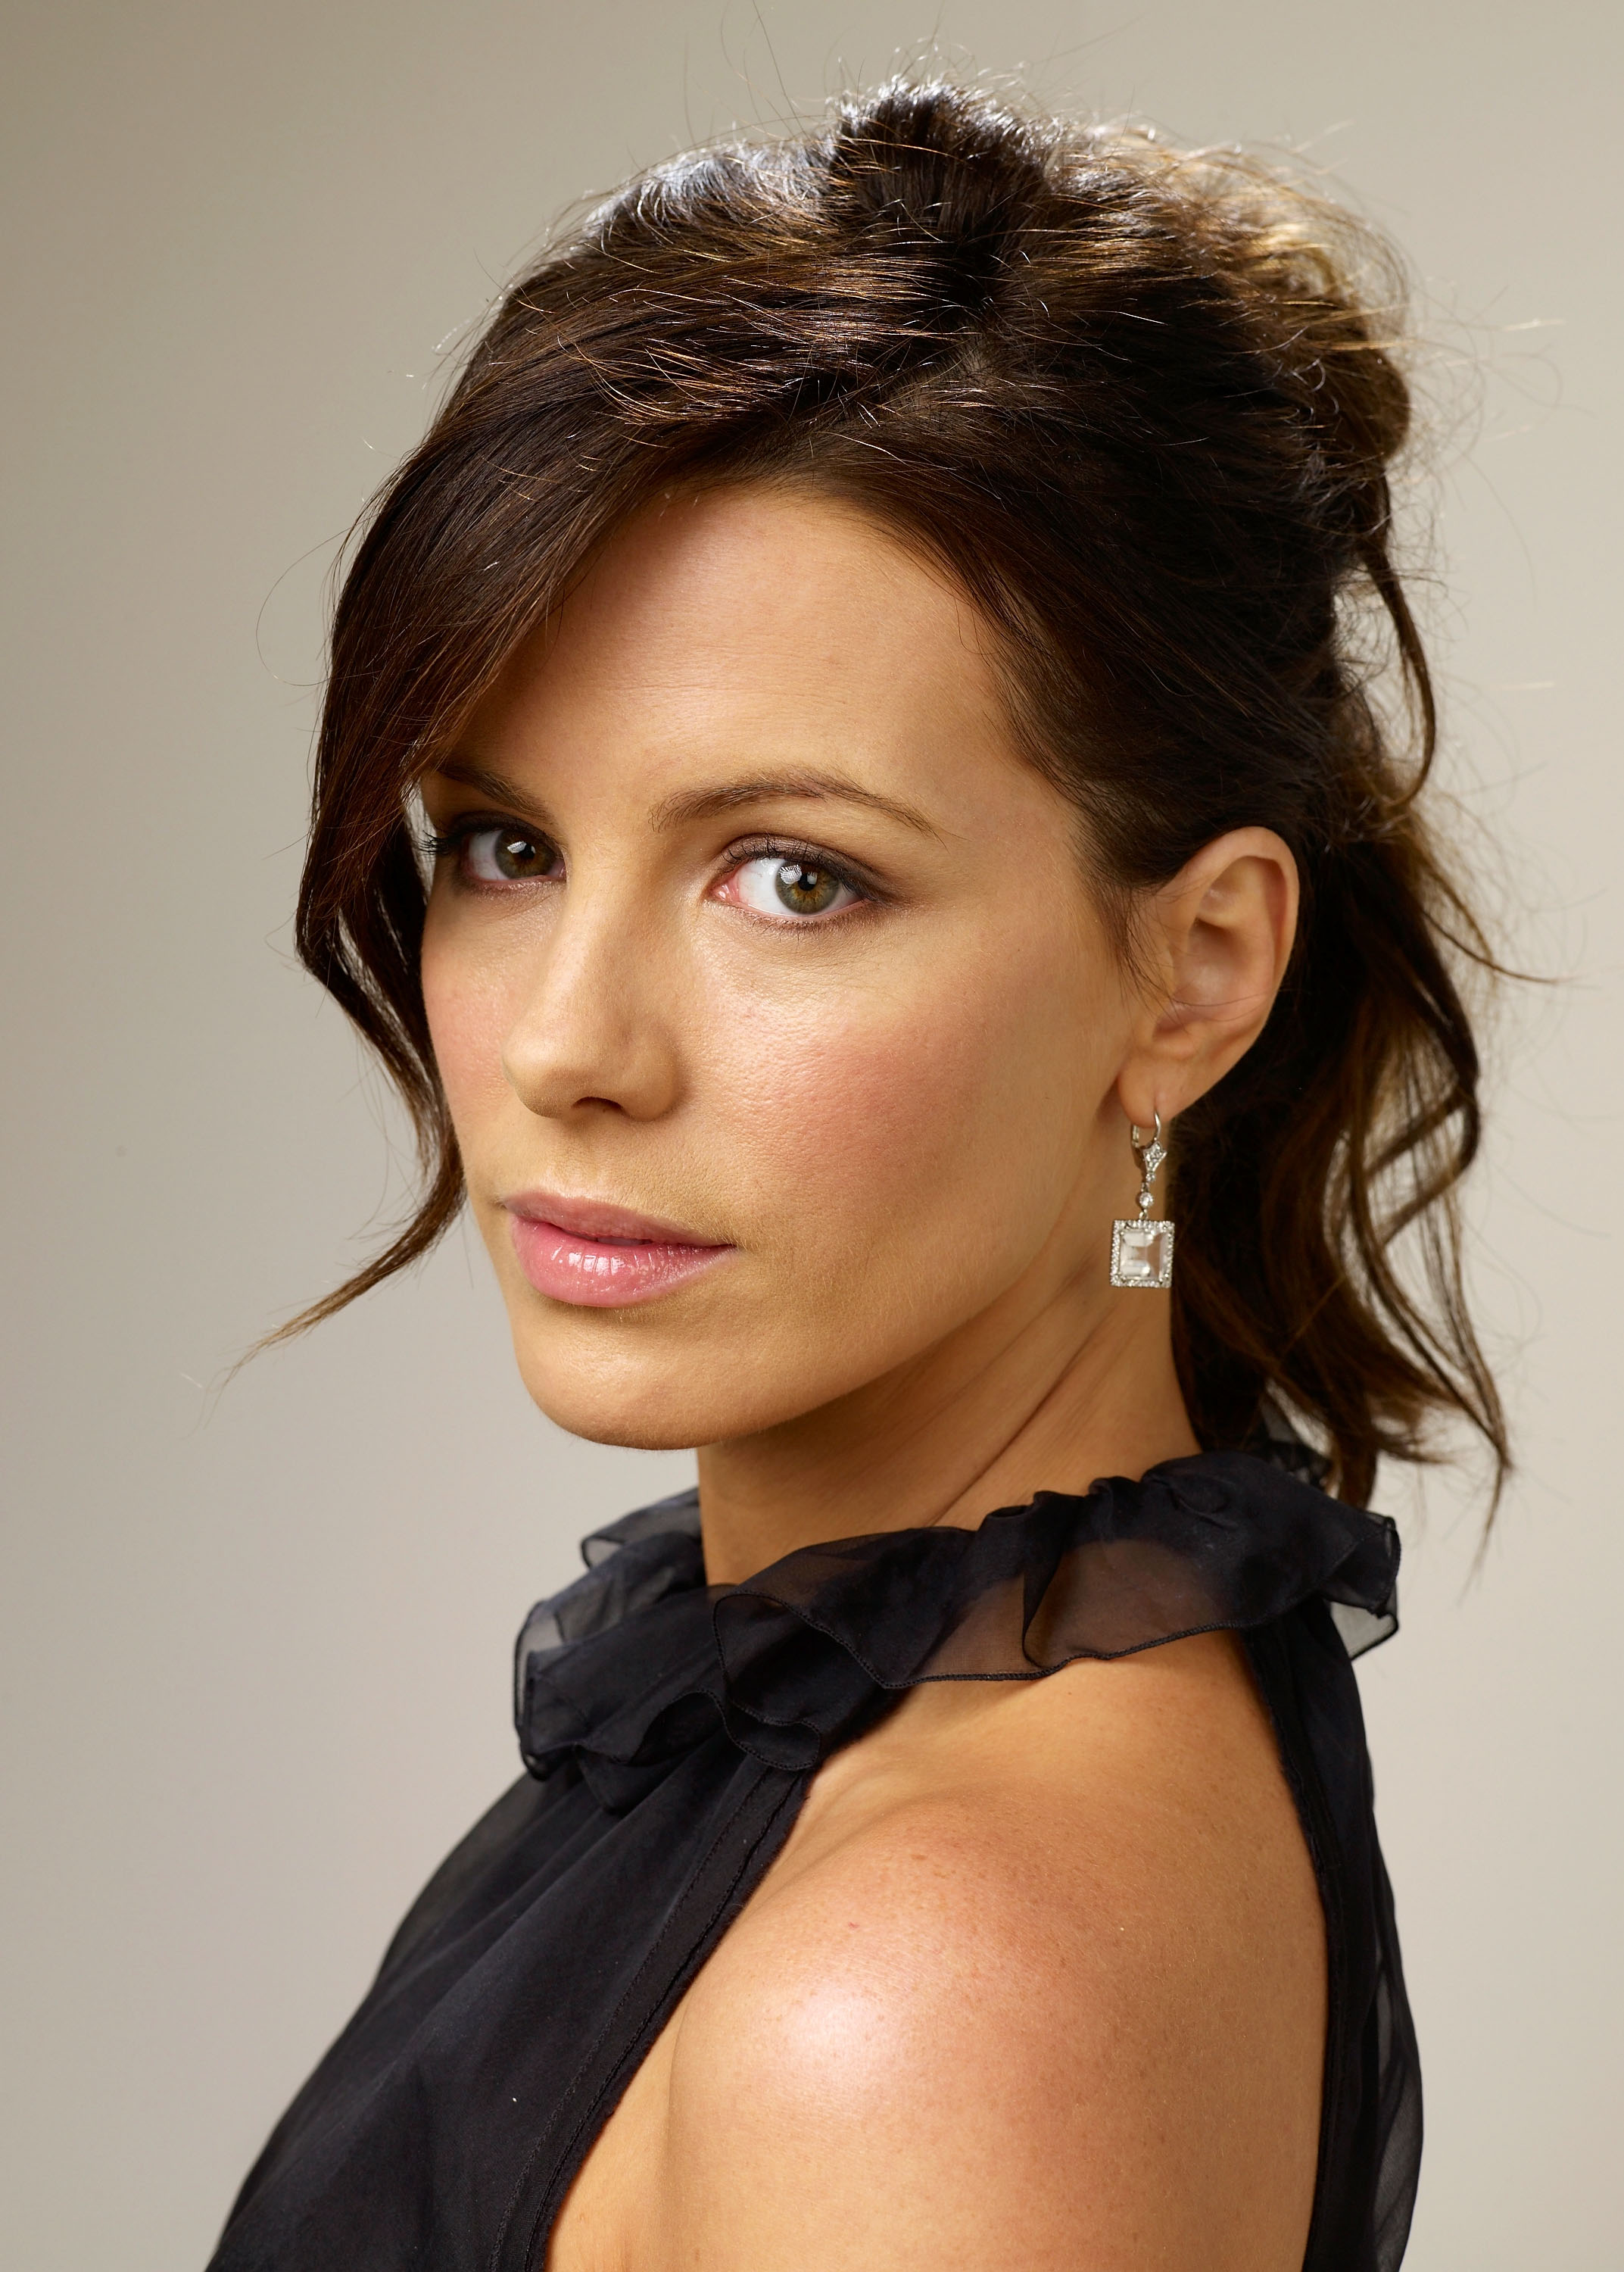 83627_Celebutopia-Kate_Beckinsale-Nothing_But_The_Truth_TIFF_2008_Portrait_Session-03_122_410lo.jpg